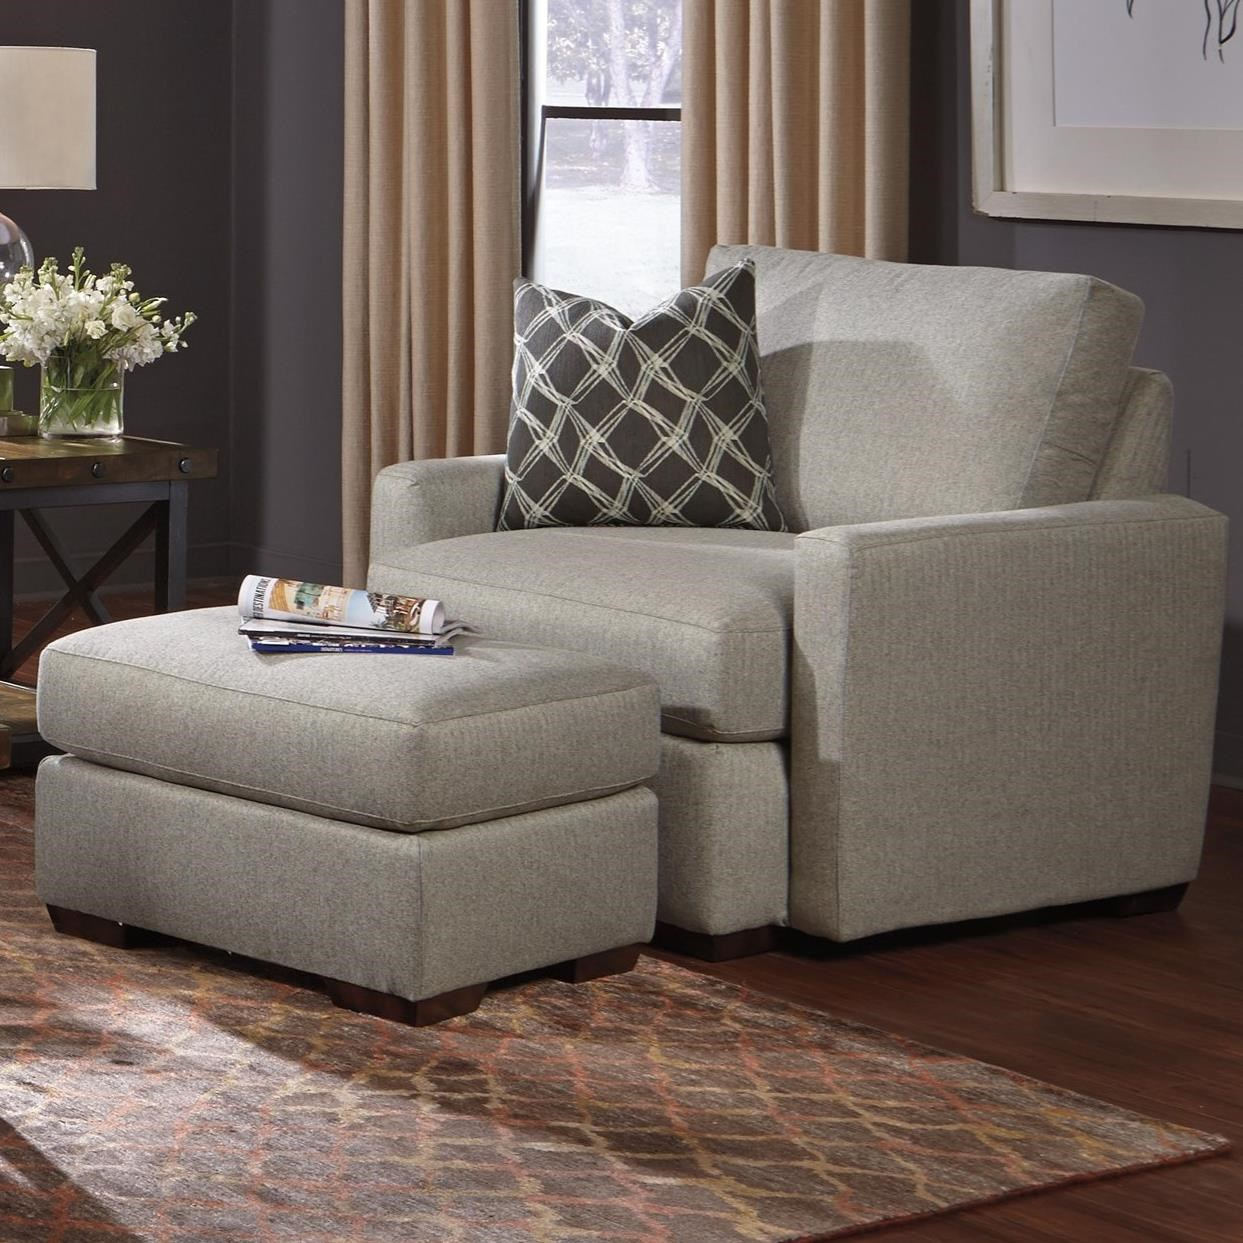 Flexsteel Michelle Chair and Ottoman - Item Number: 7906-10+08 02